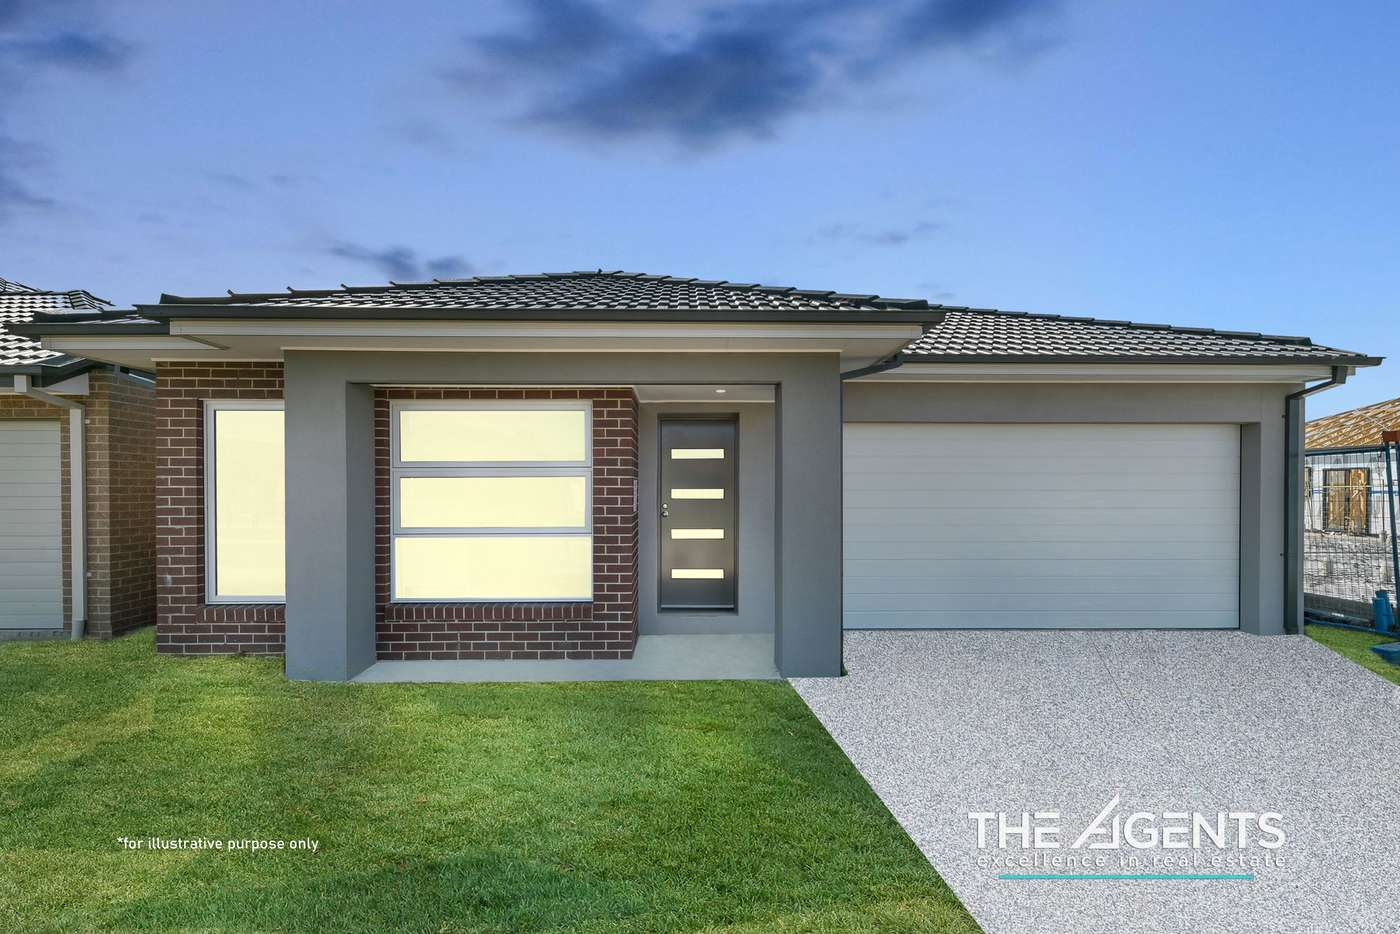 Main view of Homely house listing, 49 Dajara Avenue, Wyndham Vale VIC 3024